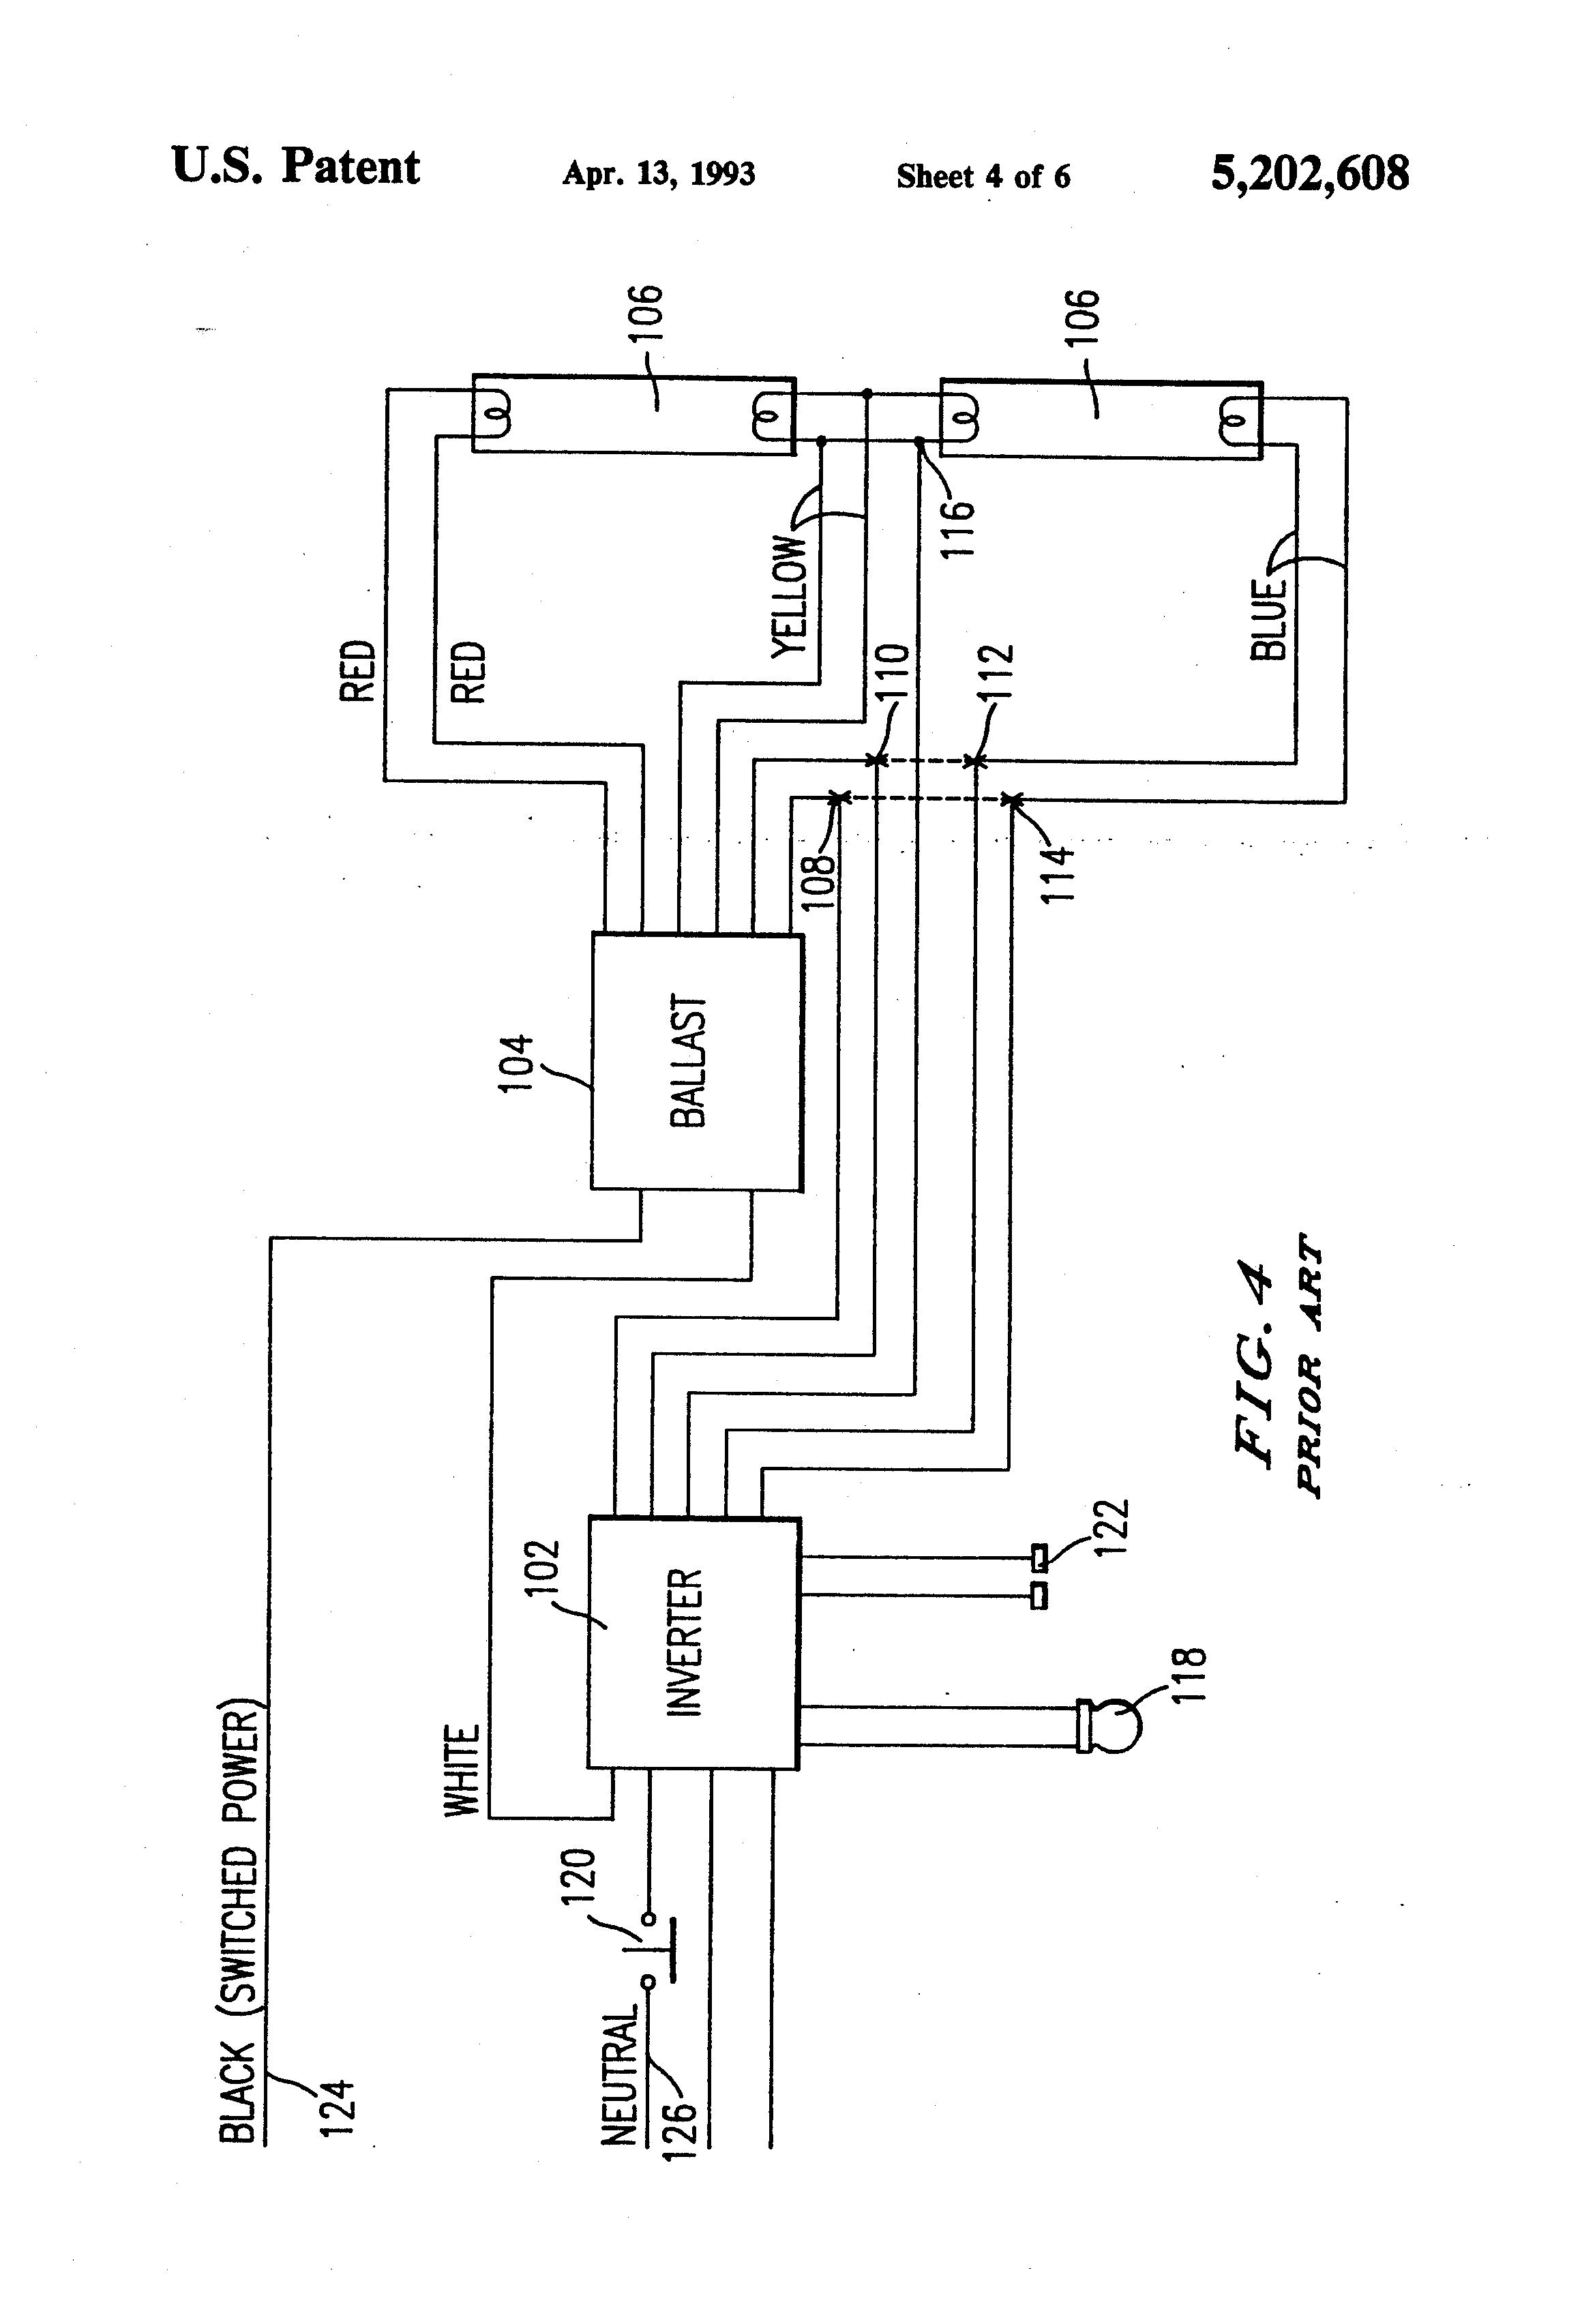 mh ballast wiring diagram Collection-Wiring Diagram for Metal Halide Ballast New 44 Unique Metal Halide Lamp Circuit Diagram 19-s